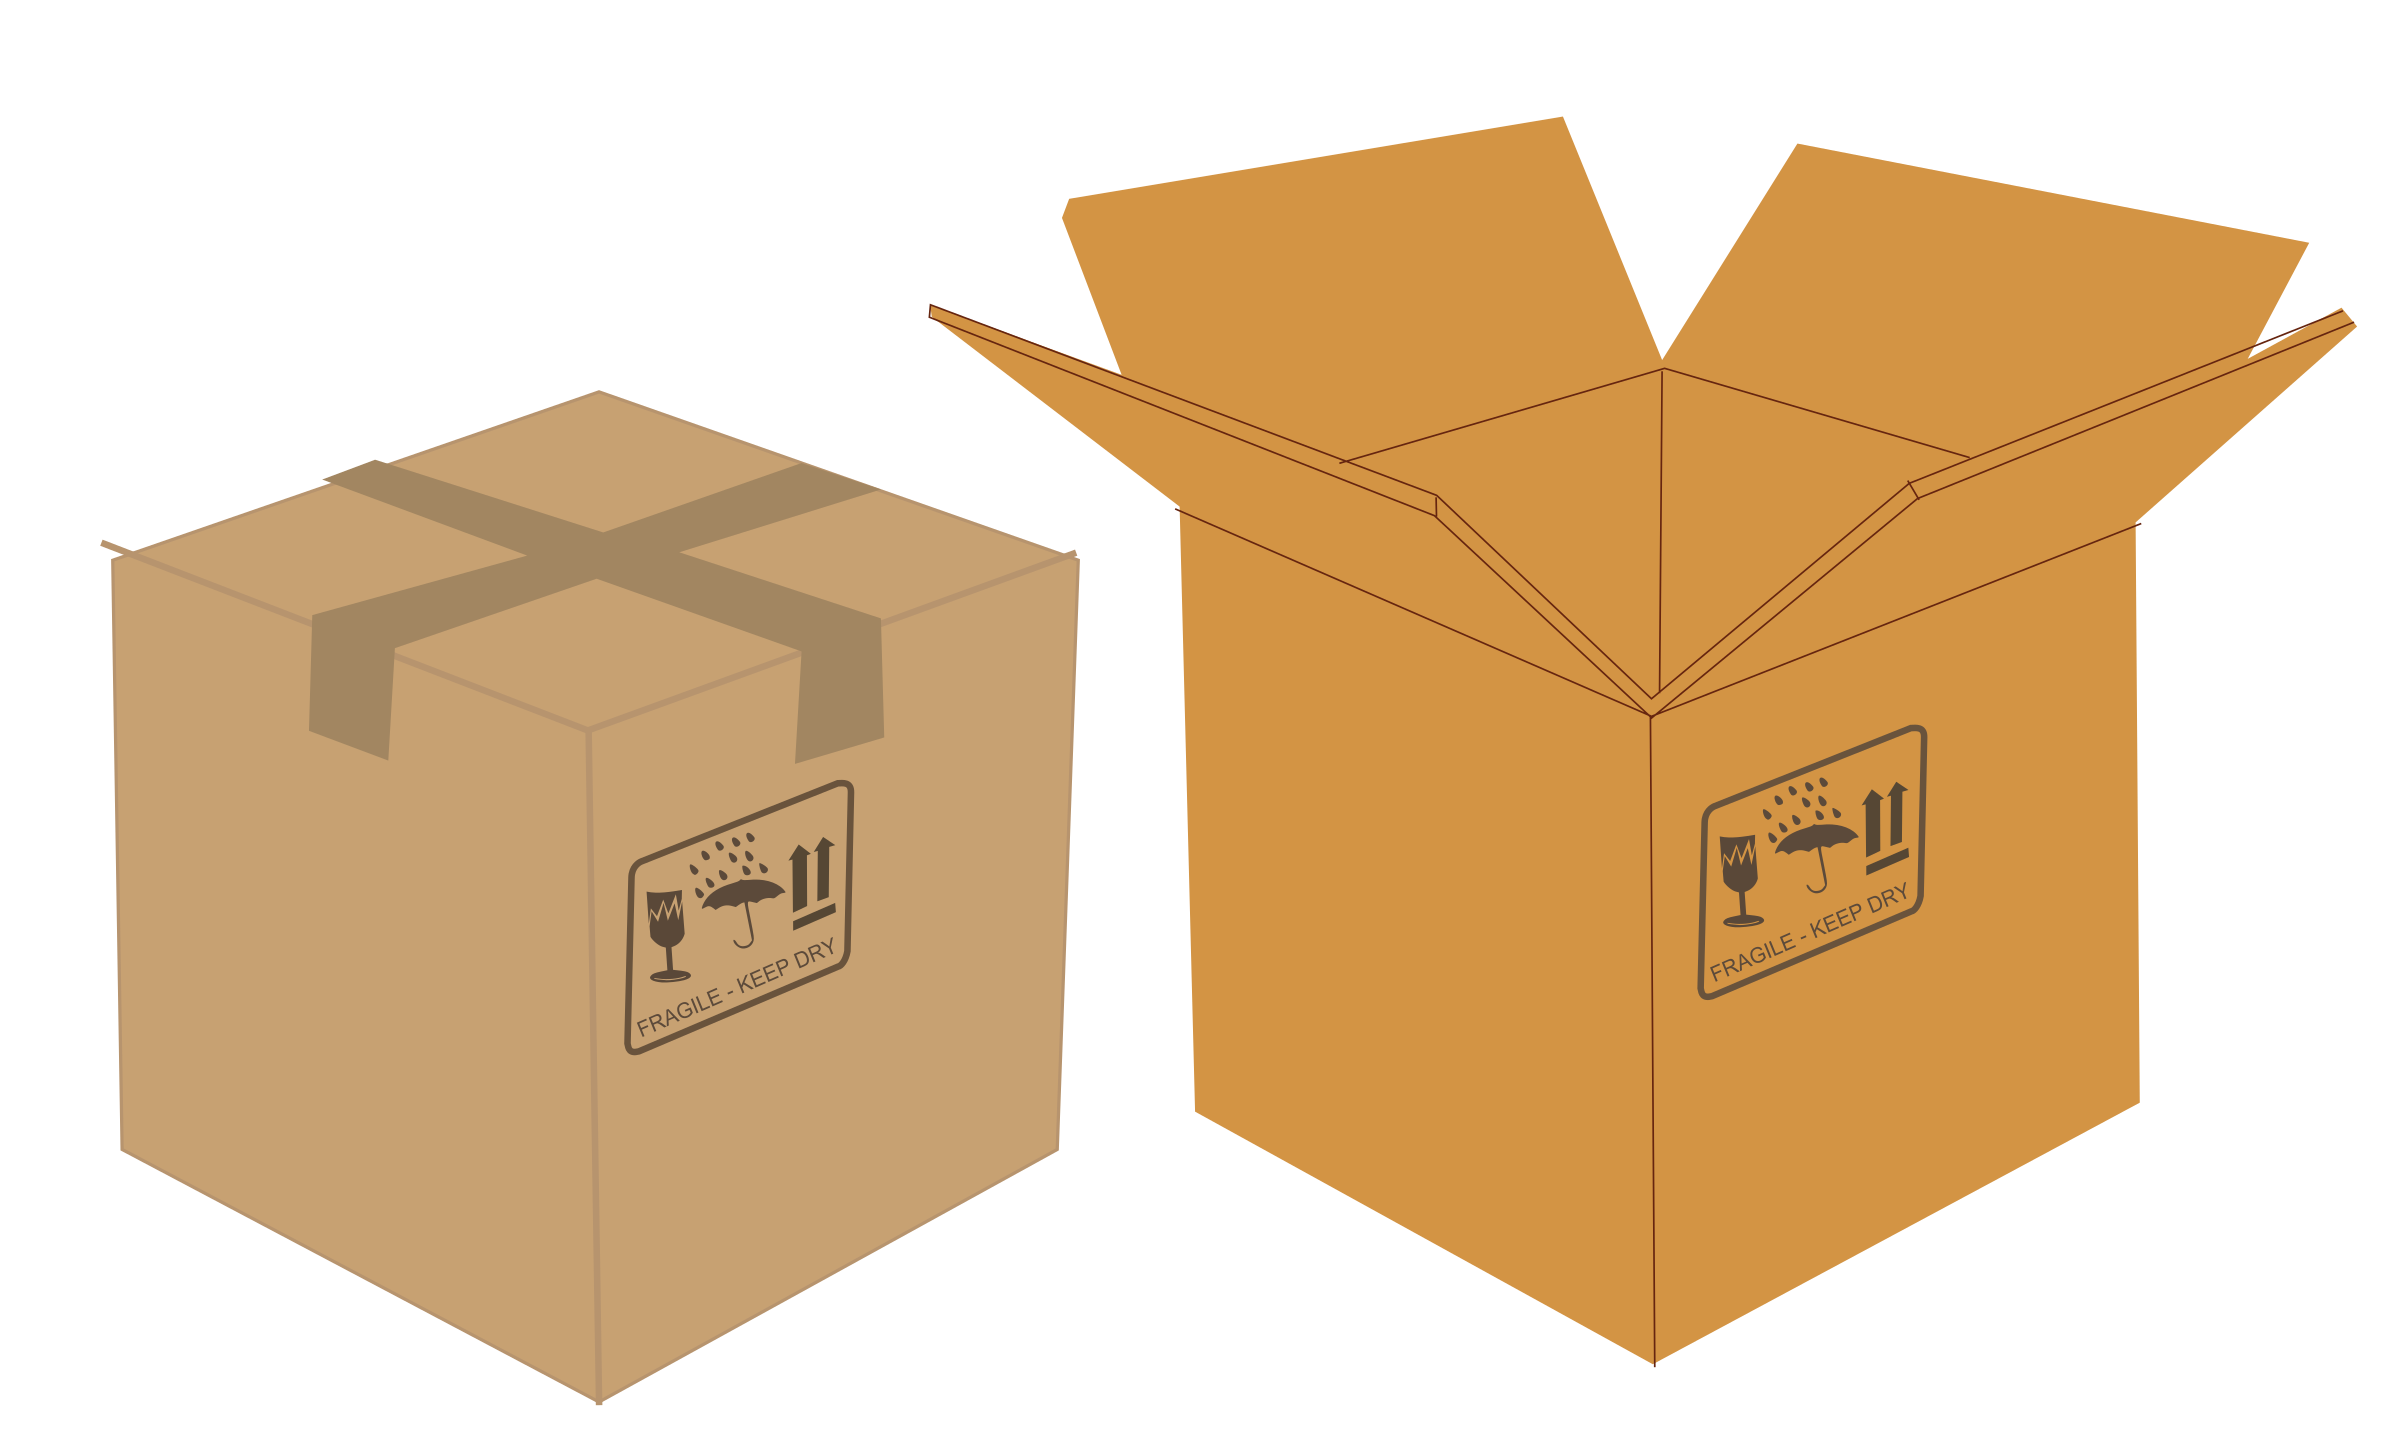 Open and closed boxes by Rfc1394